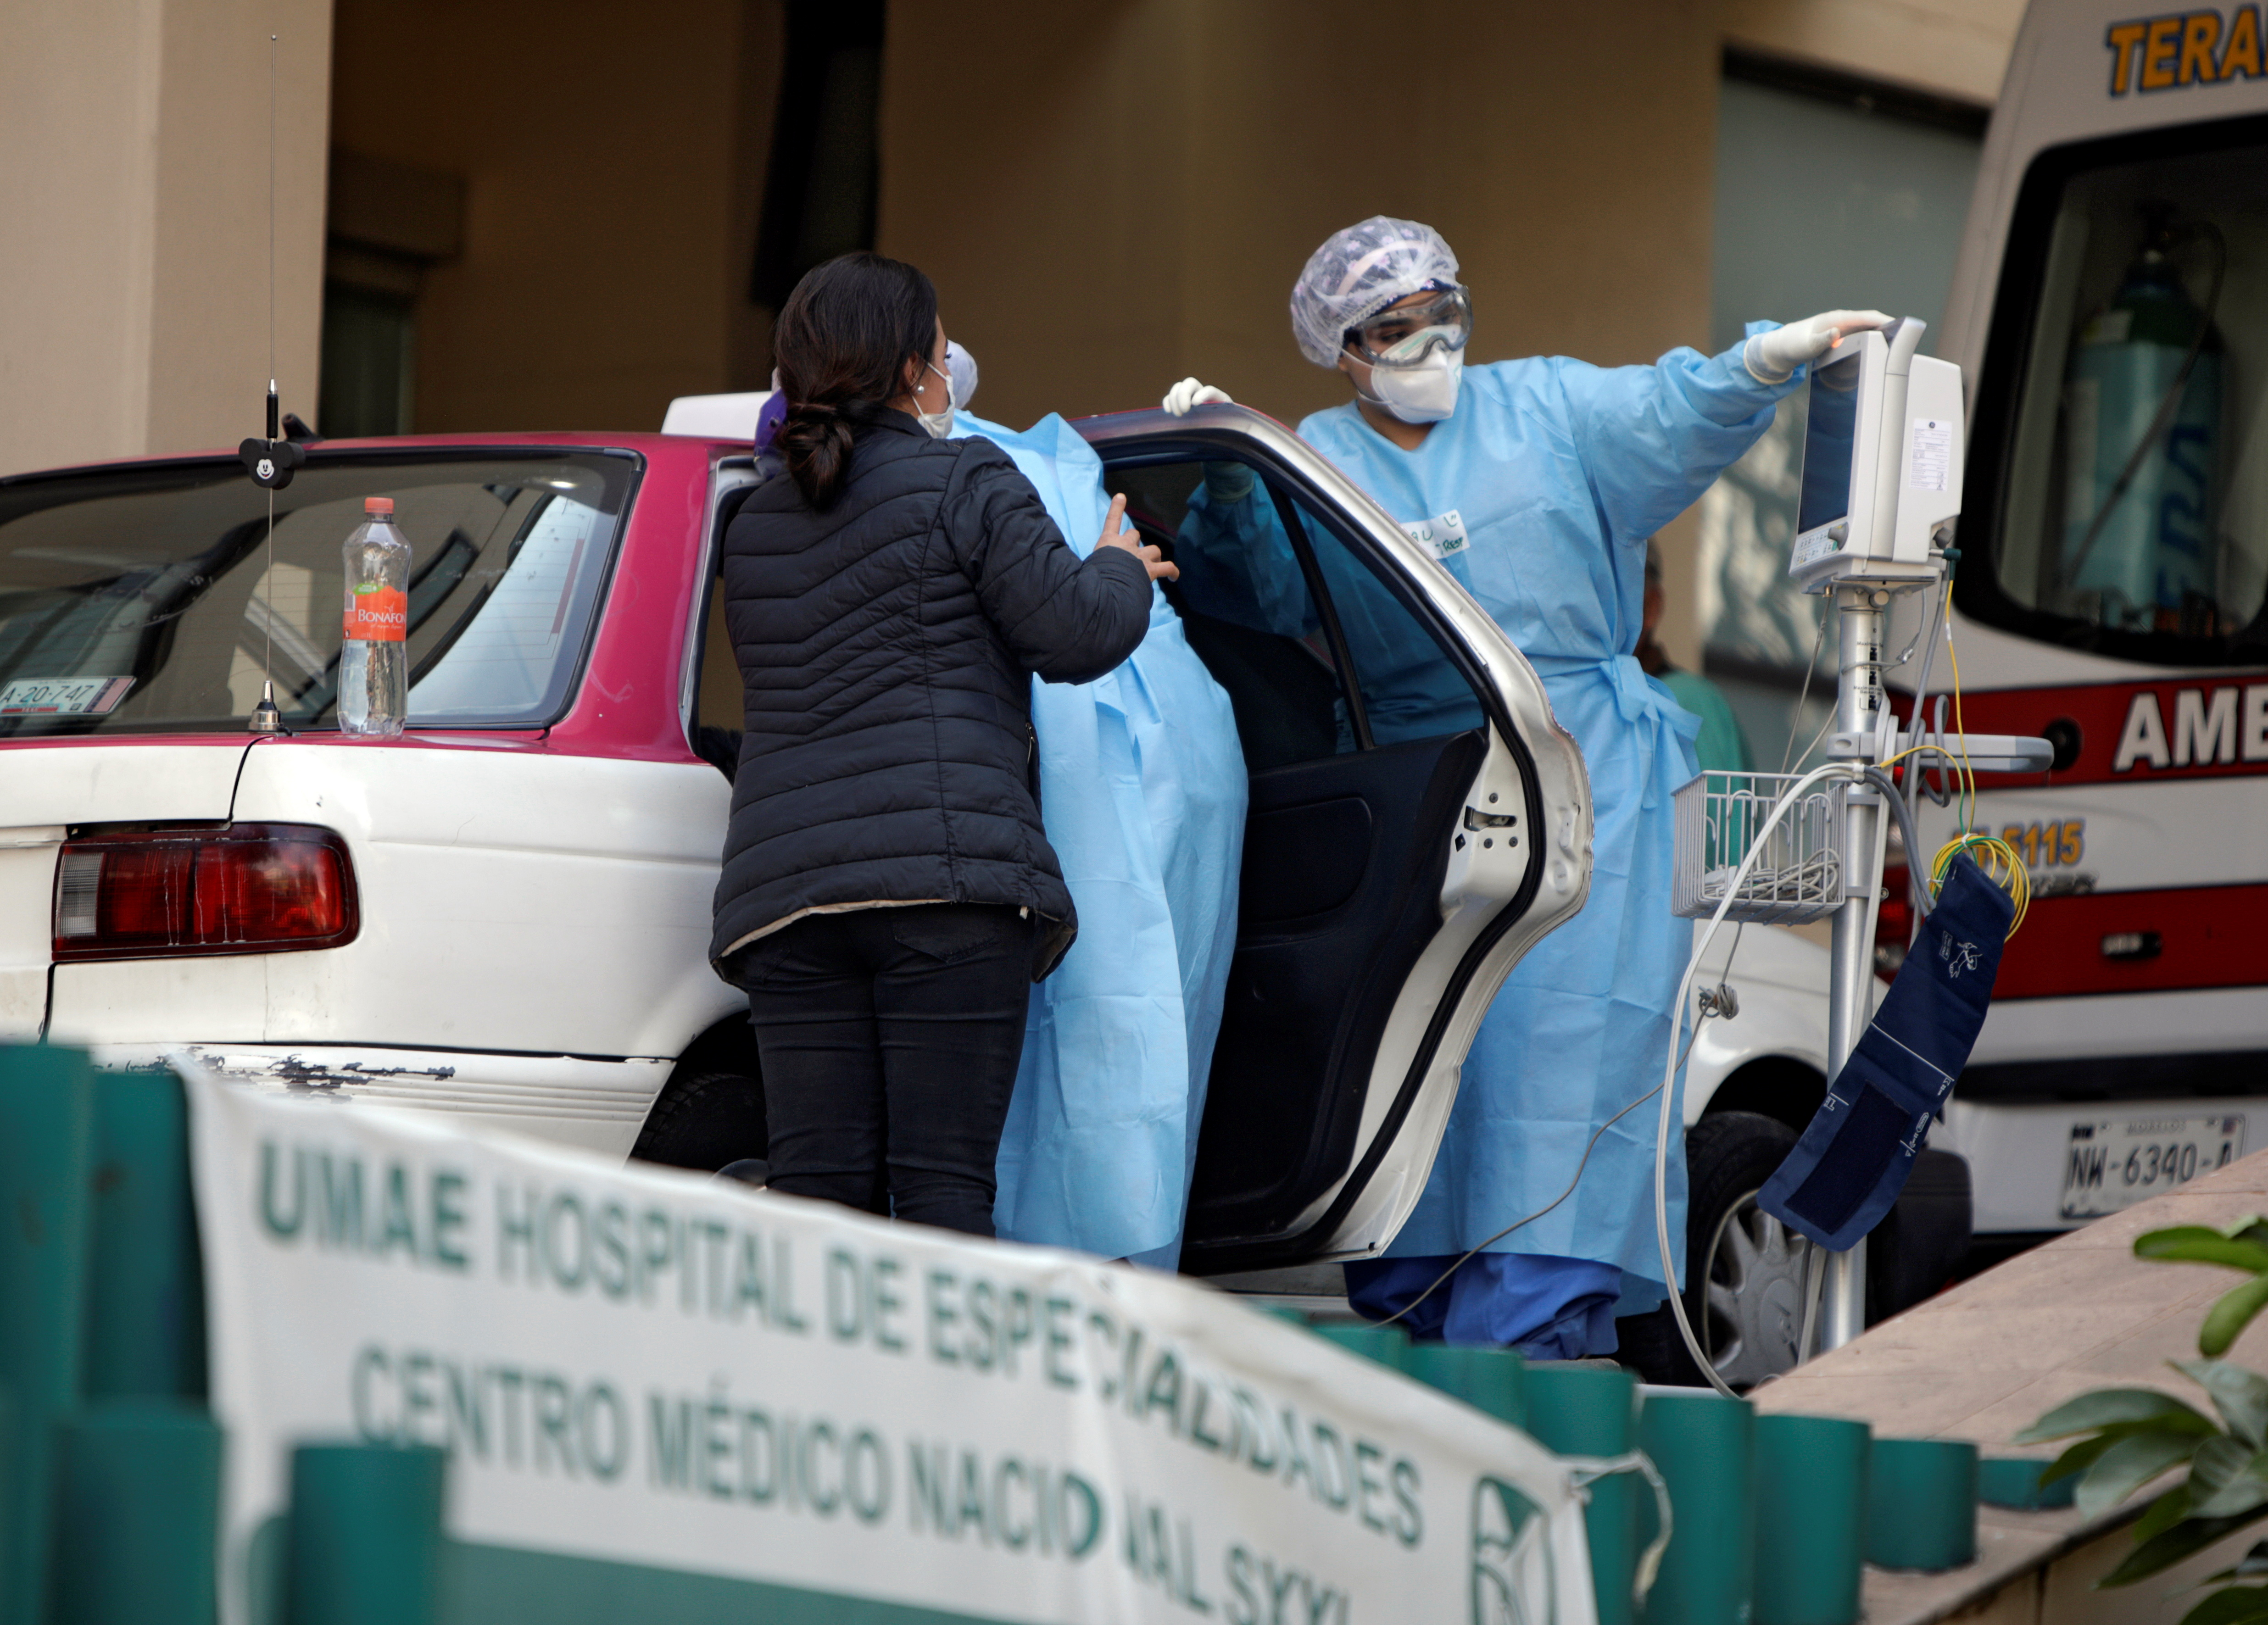 Health workers try to assist an unresponsive man showing symptoms of the coronavirus disease (COVID-19) who was brought to the General Hospital in a taxi, in Mexico City, Mexico January 7, 2021. REUTERS/Luis Cortes